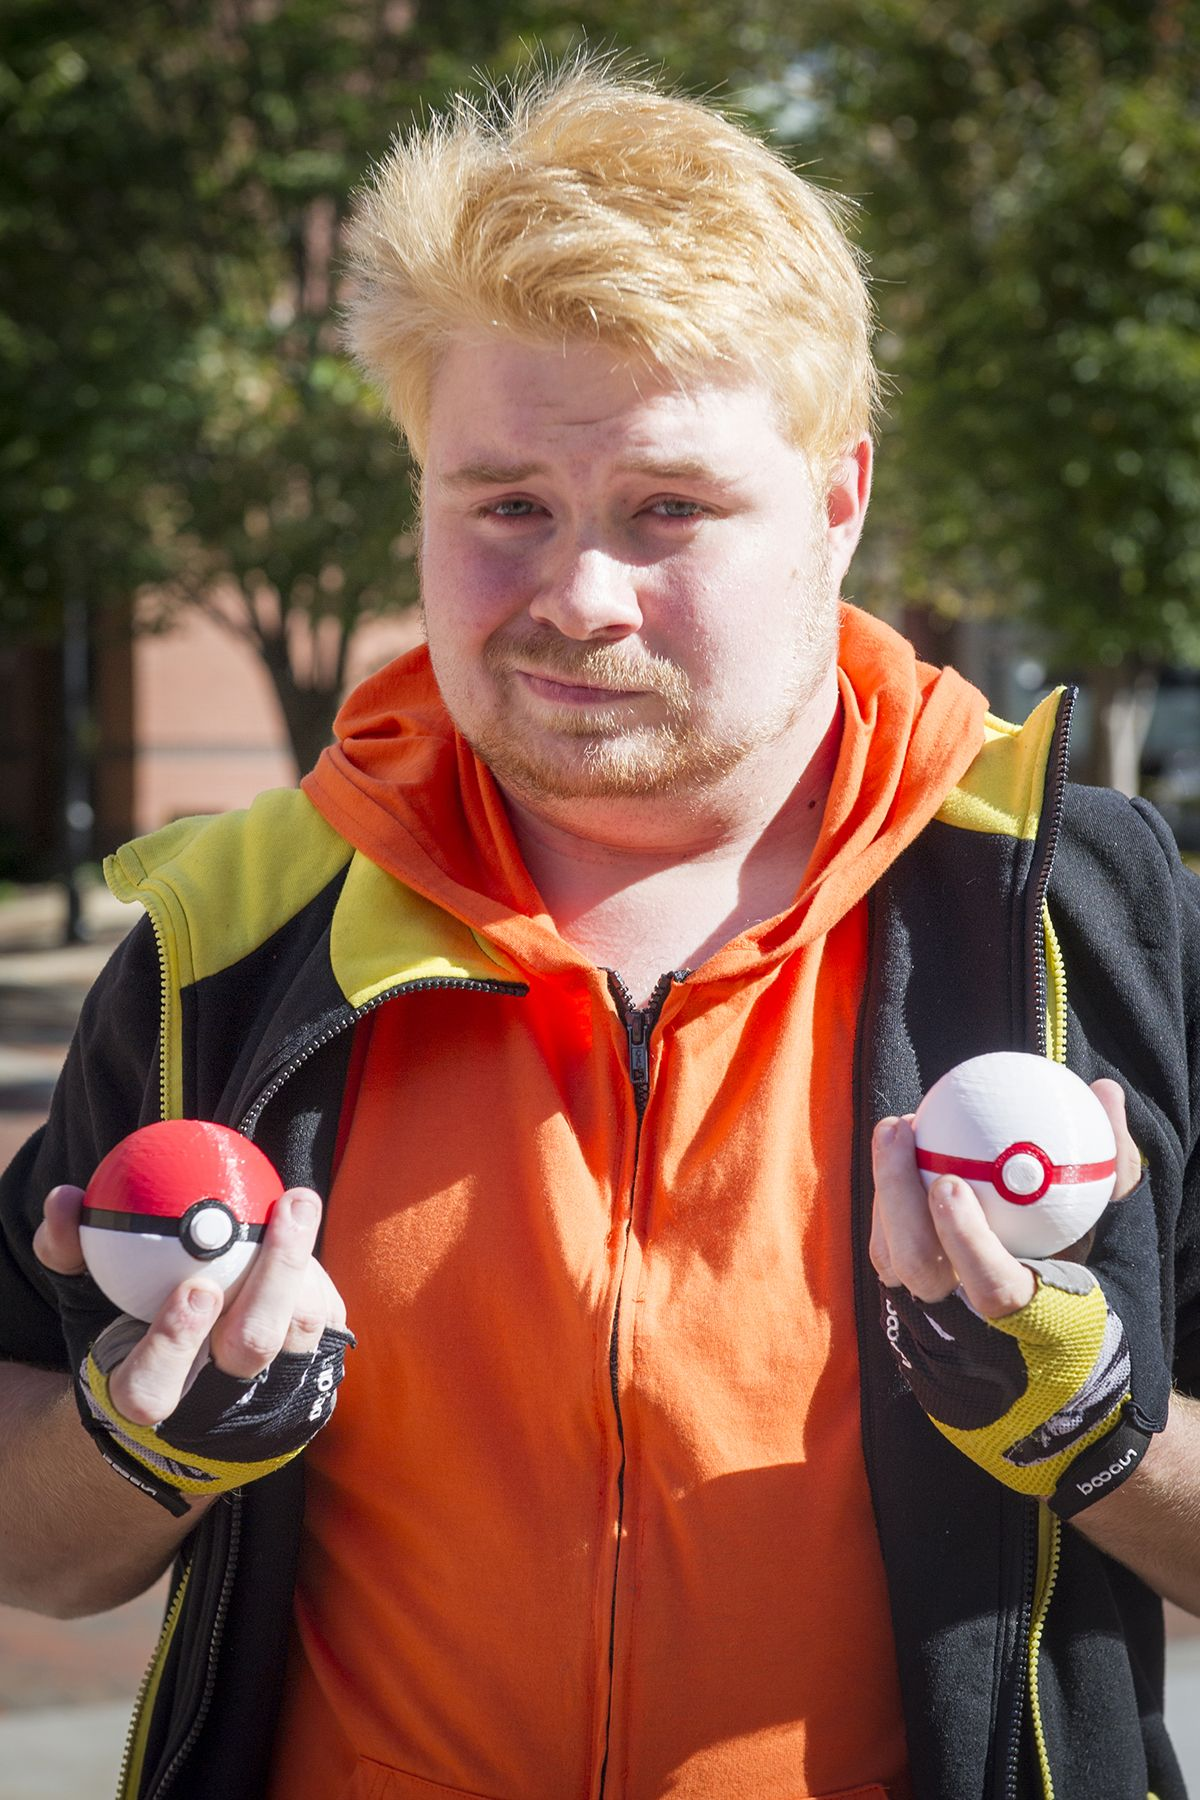 Halloween Costumes at VCU - PokemonGo's Team Instinct Leader ...